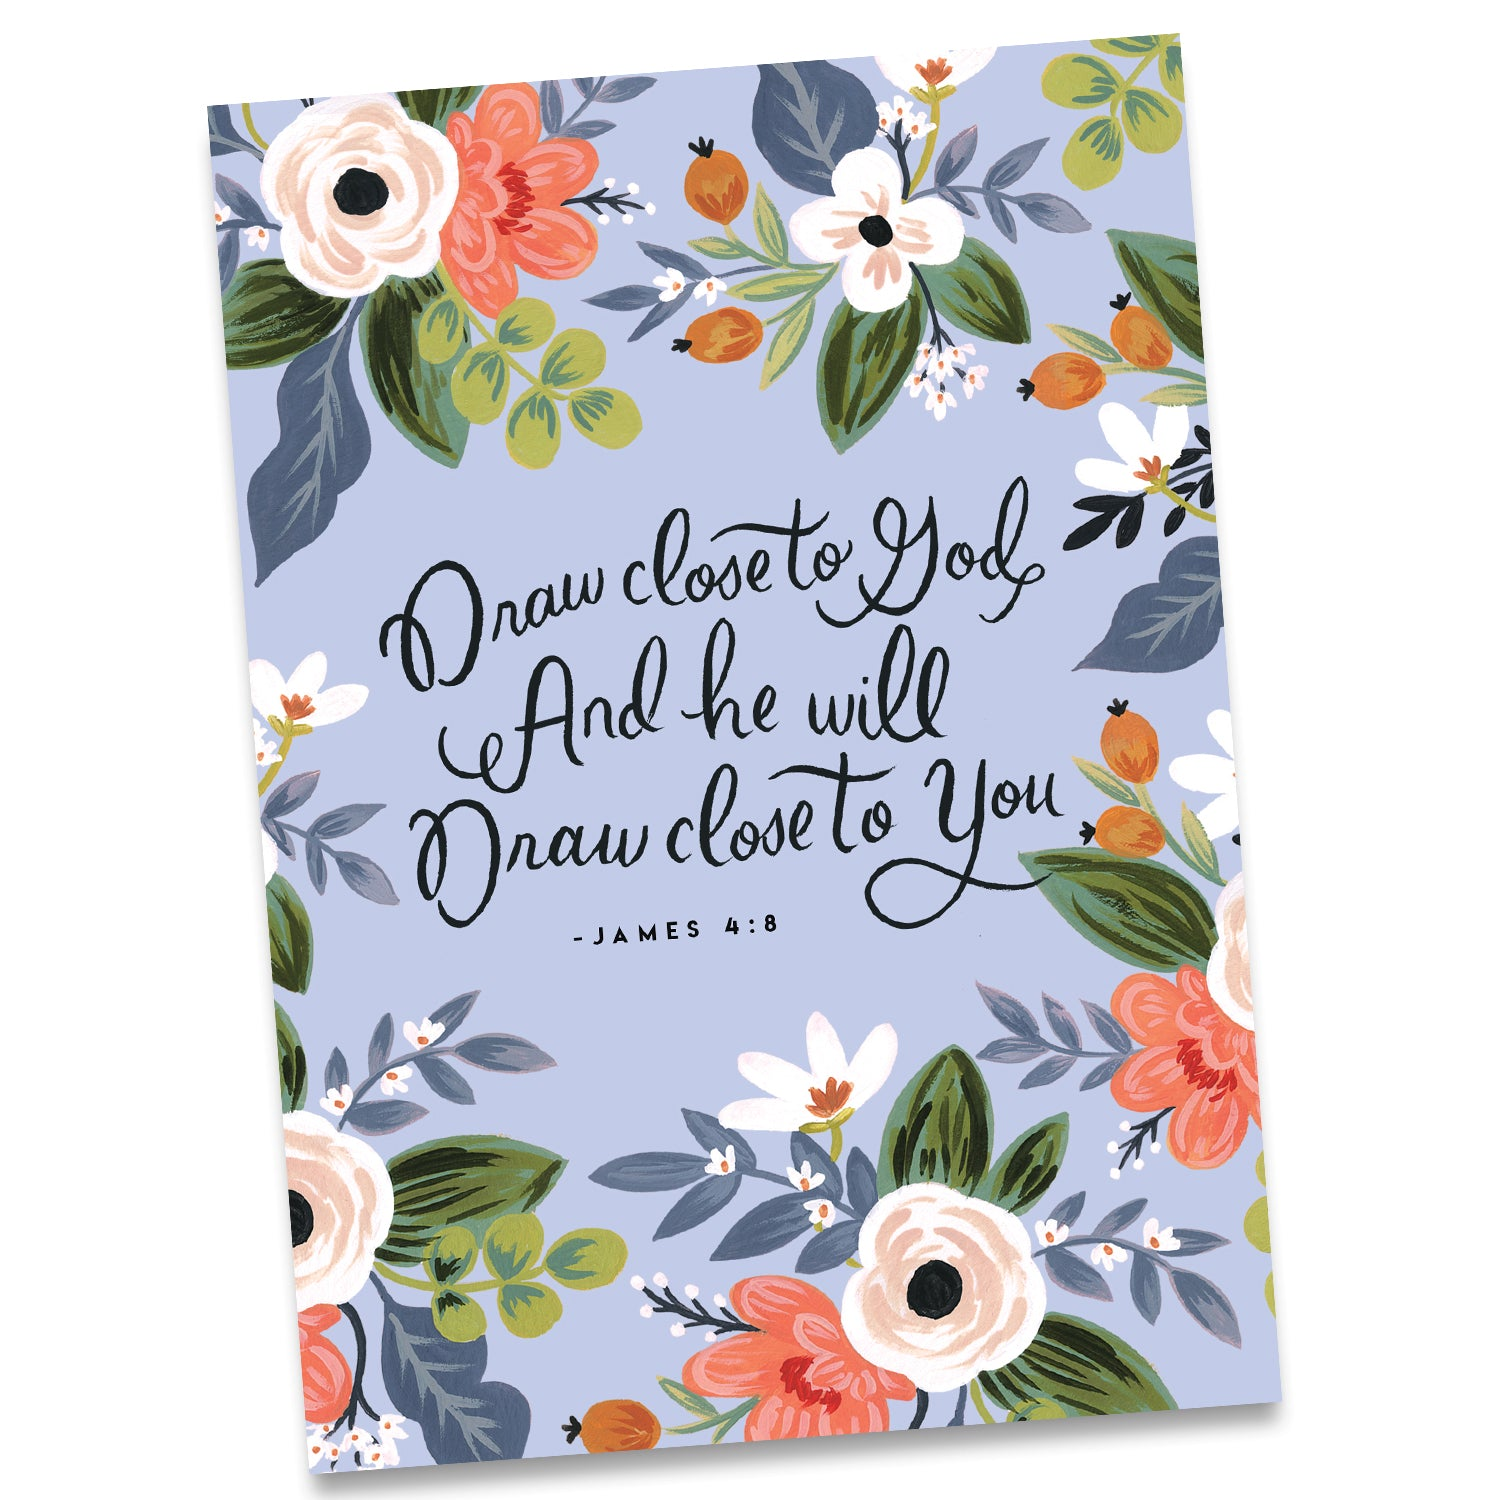 Greeting Card Draw Close To God And He Will Draw Close To You